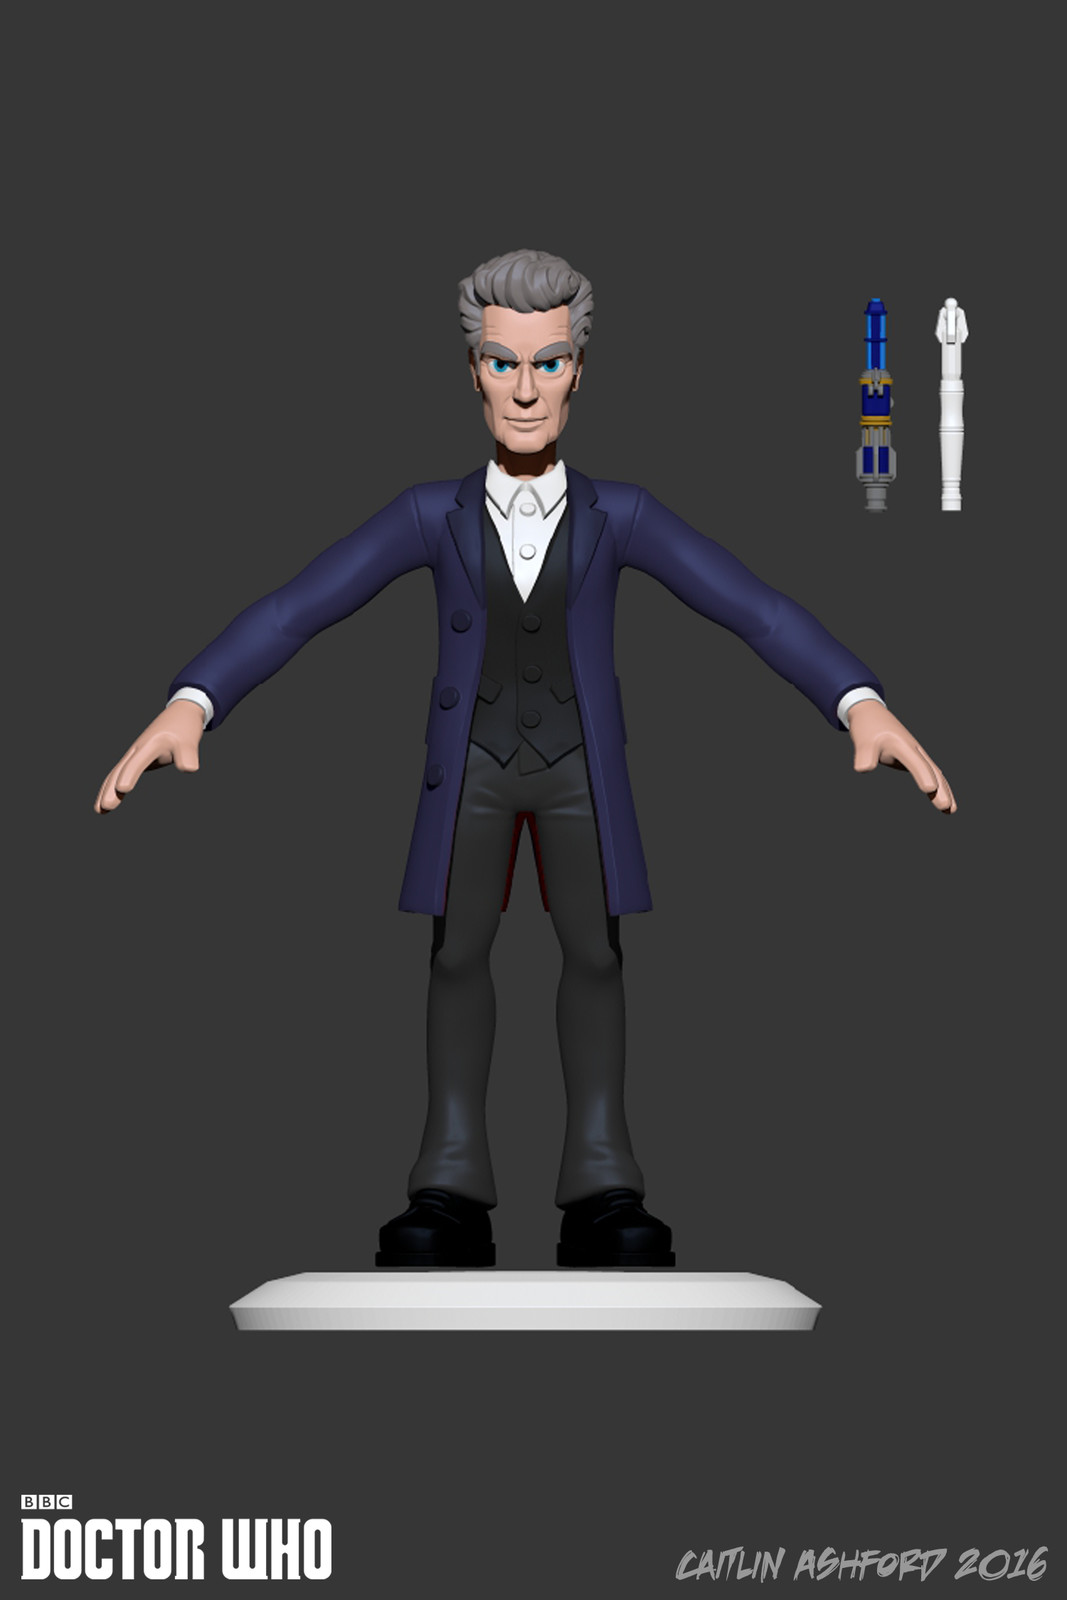 Decided my Capaldi wasn't Capaldi enough so I updated the tpose design,